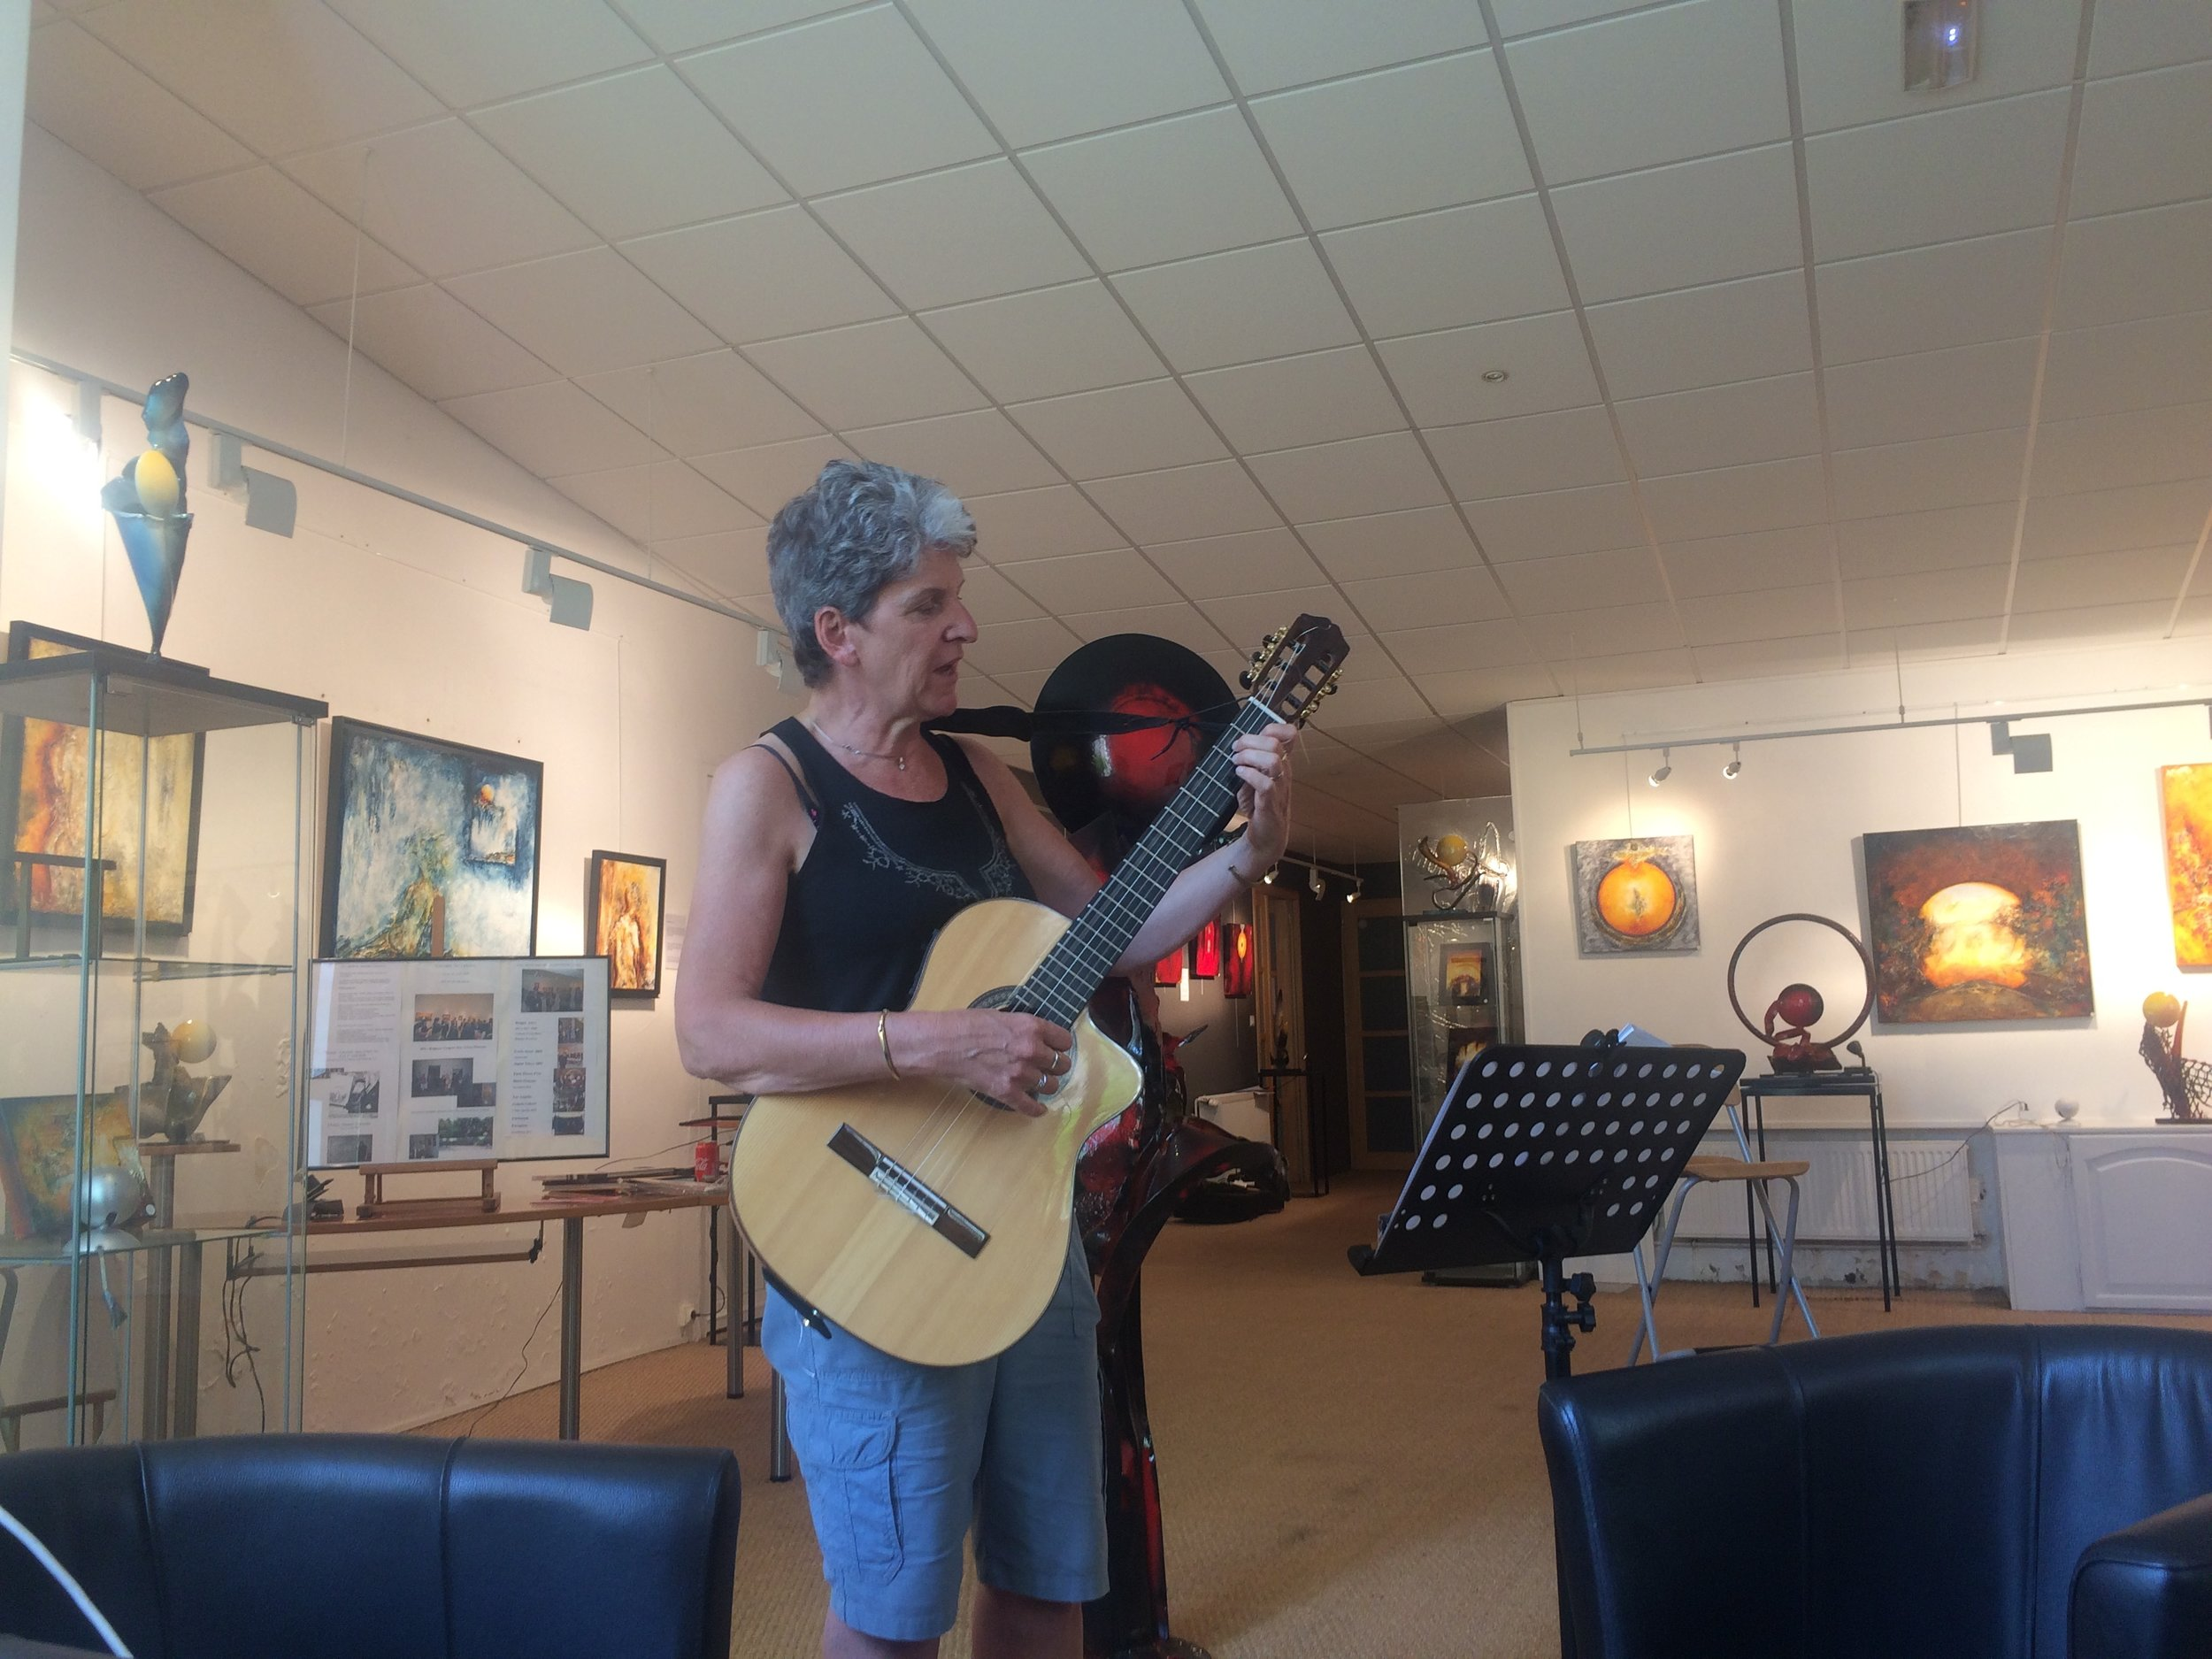 Valerie played and sang for us in the gallery of Maison L'Arthure.